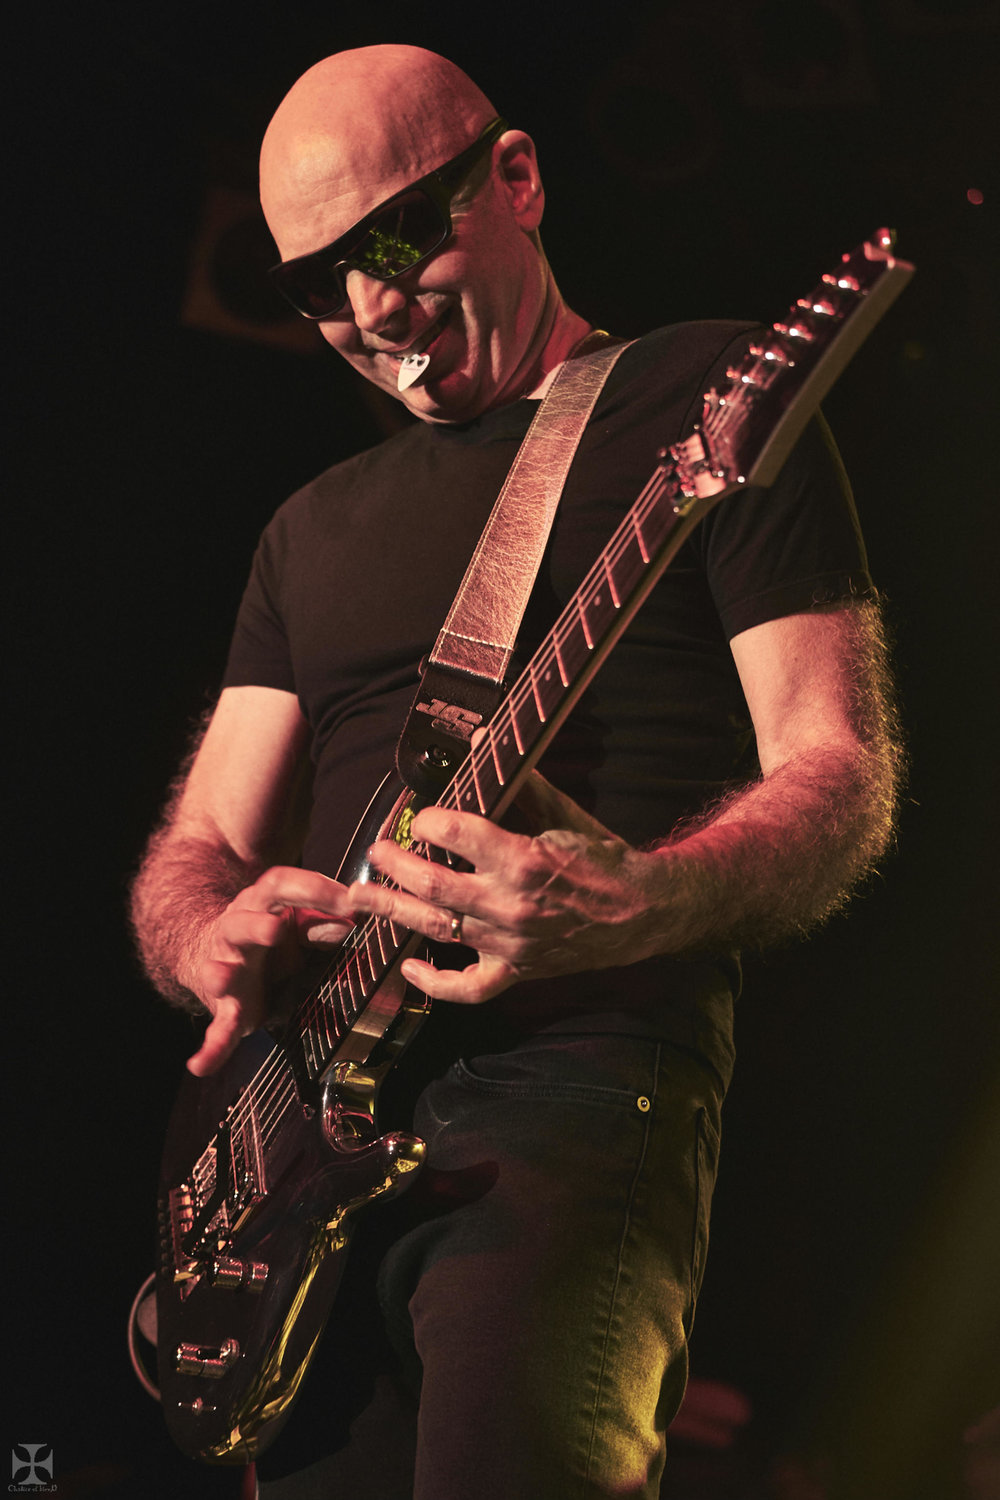 2018.12.04 Joe Satriani - DSCF6930_branded.jpg